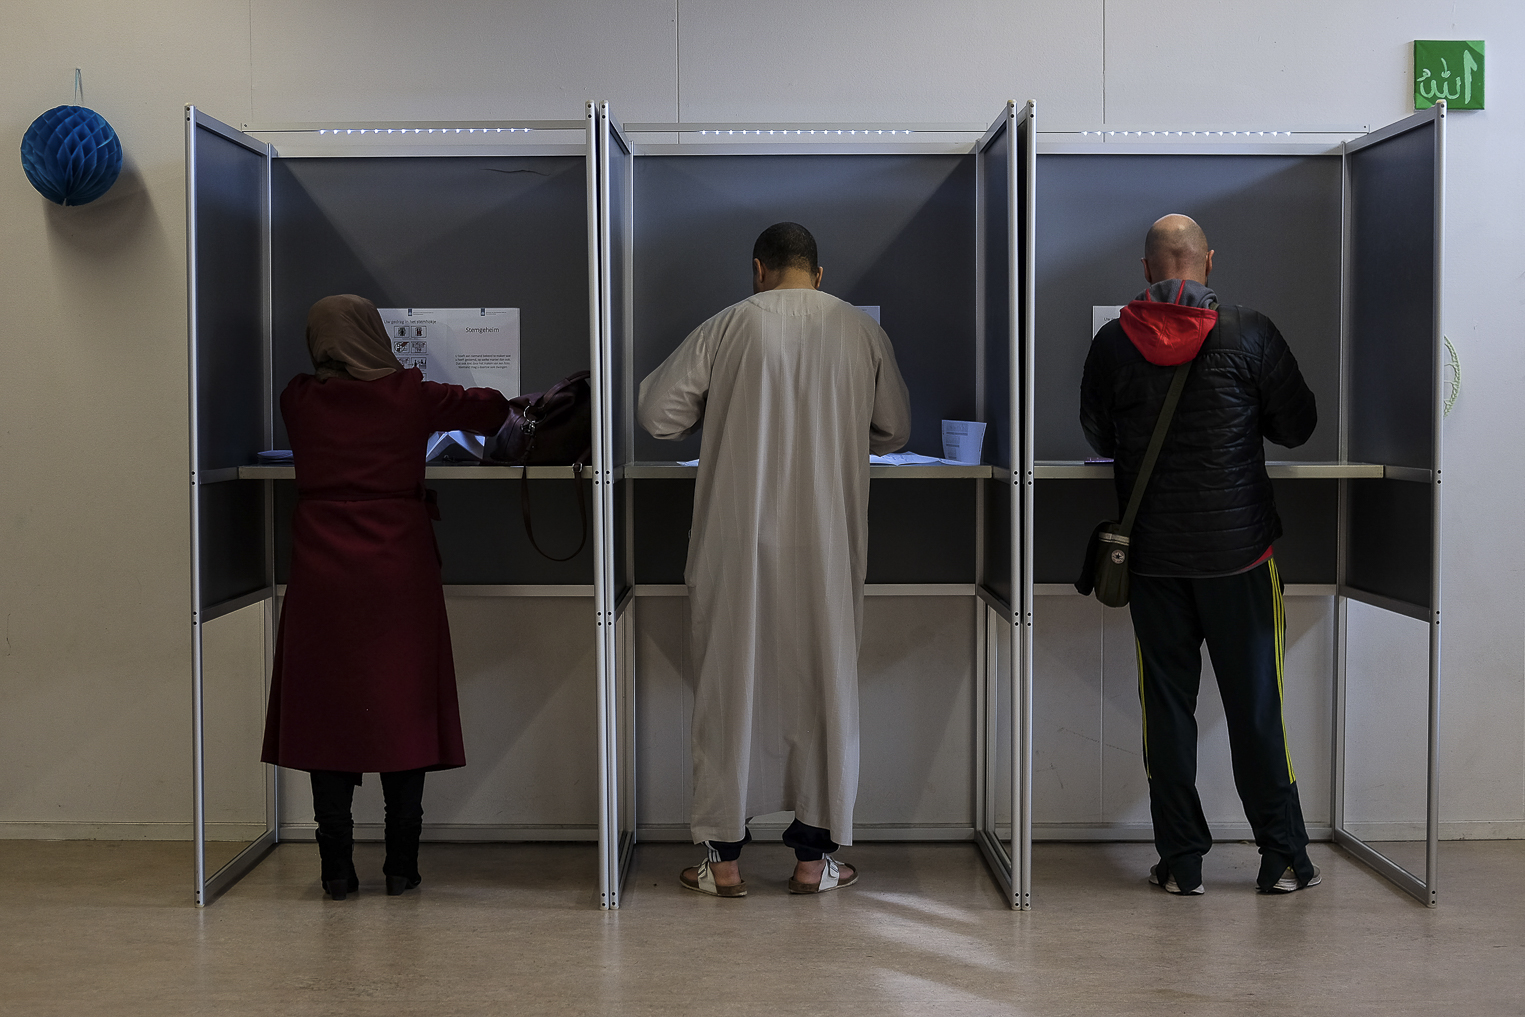 Voters cast their ballots at a local voting station in Amsterdam, Netherlands, Wednesday, March 15, 2017.